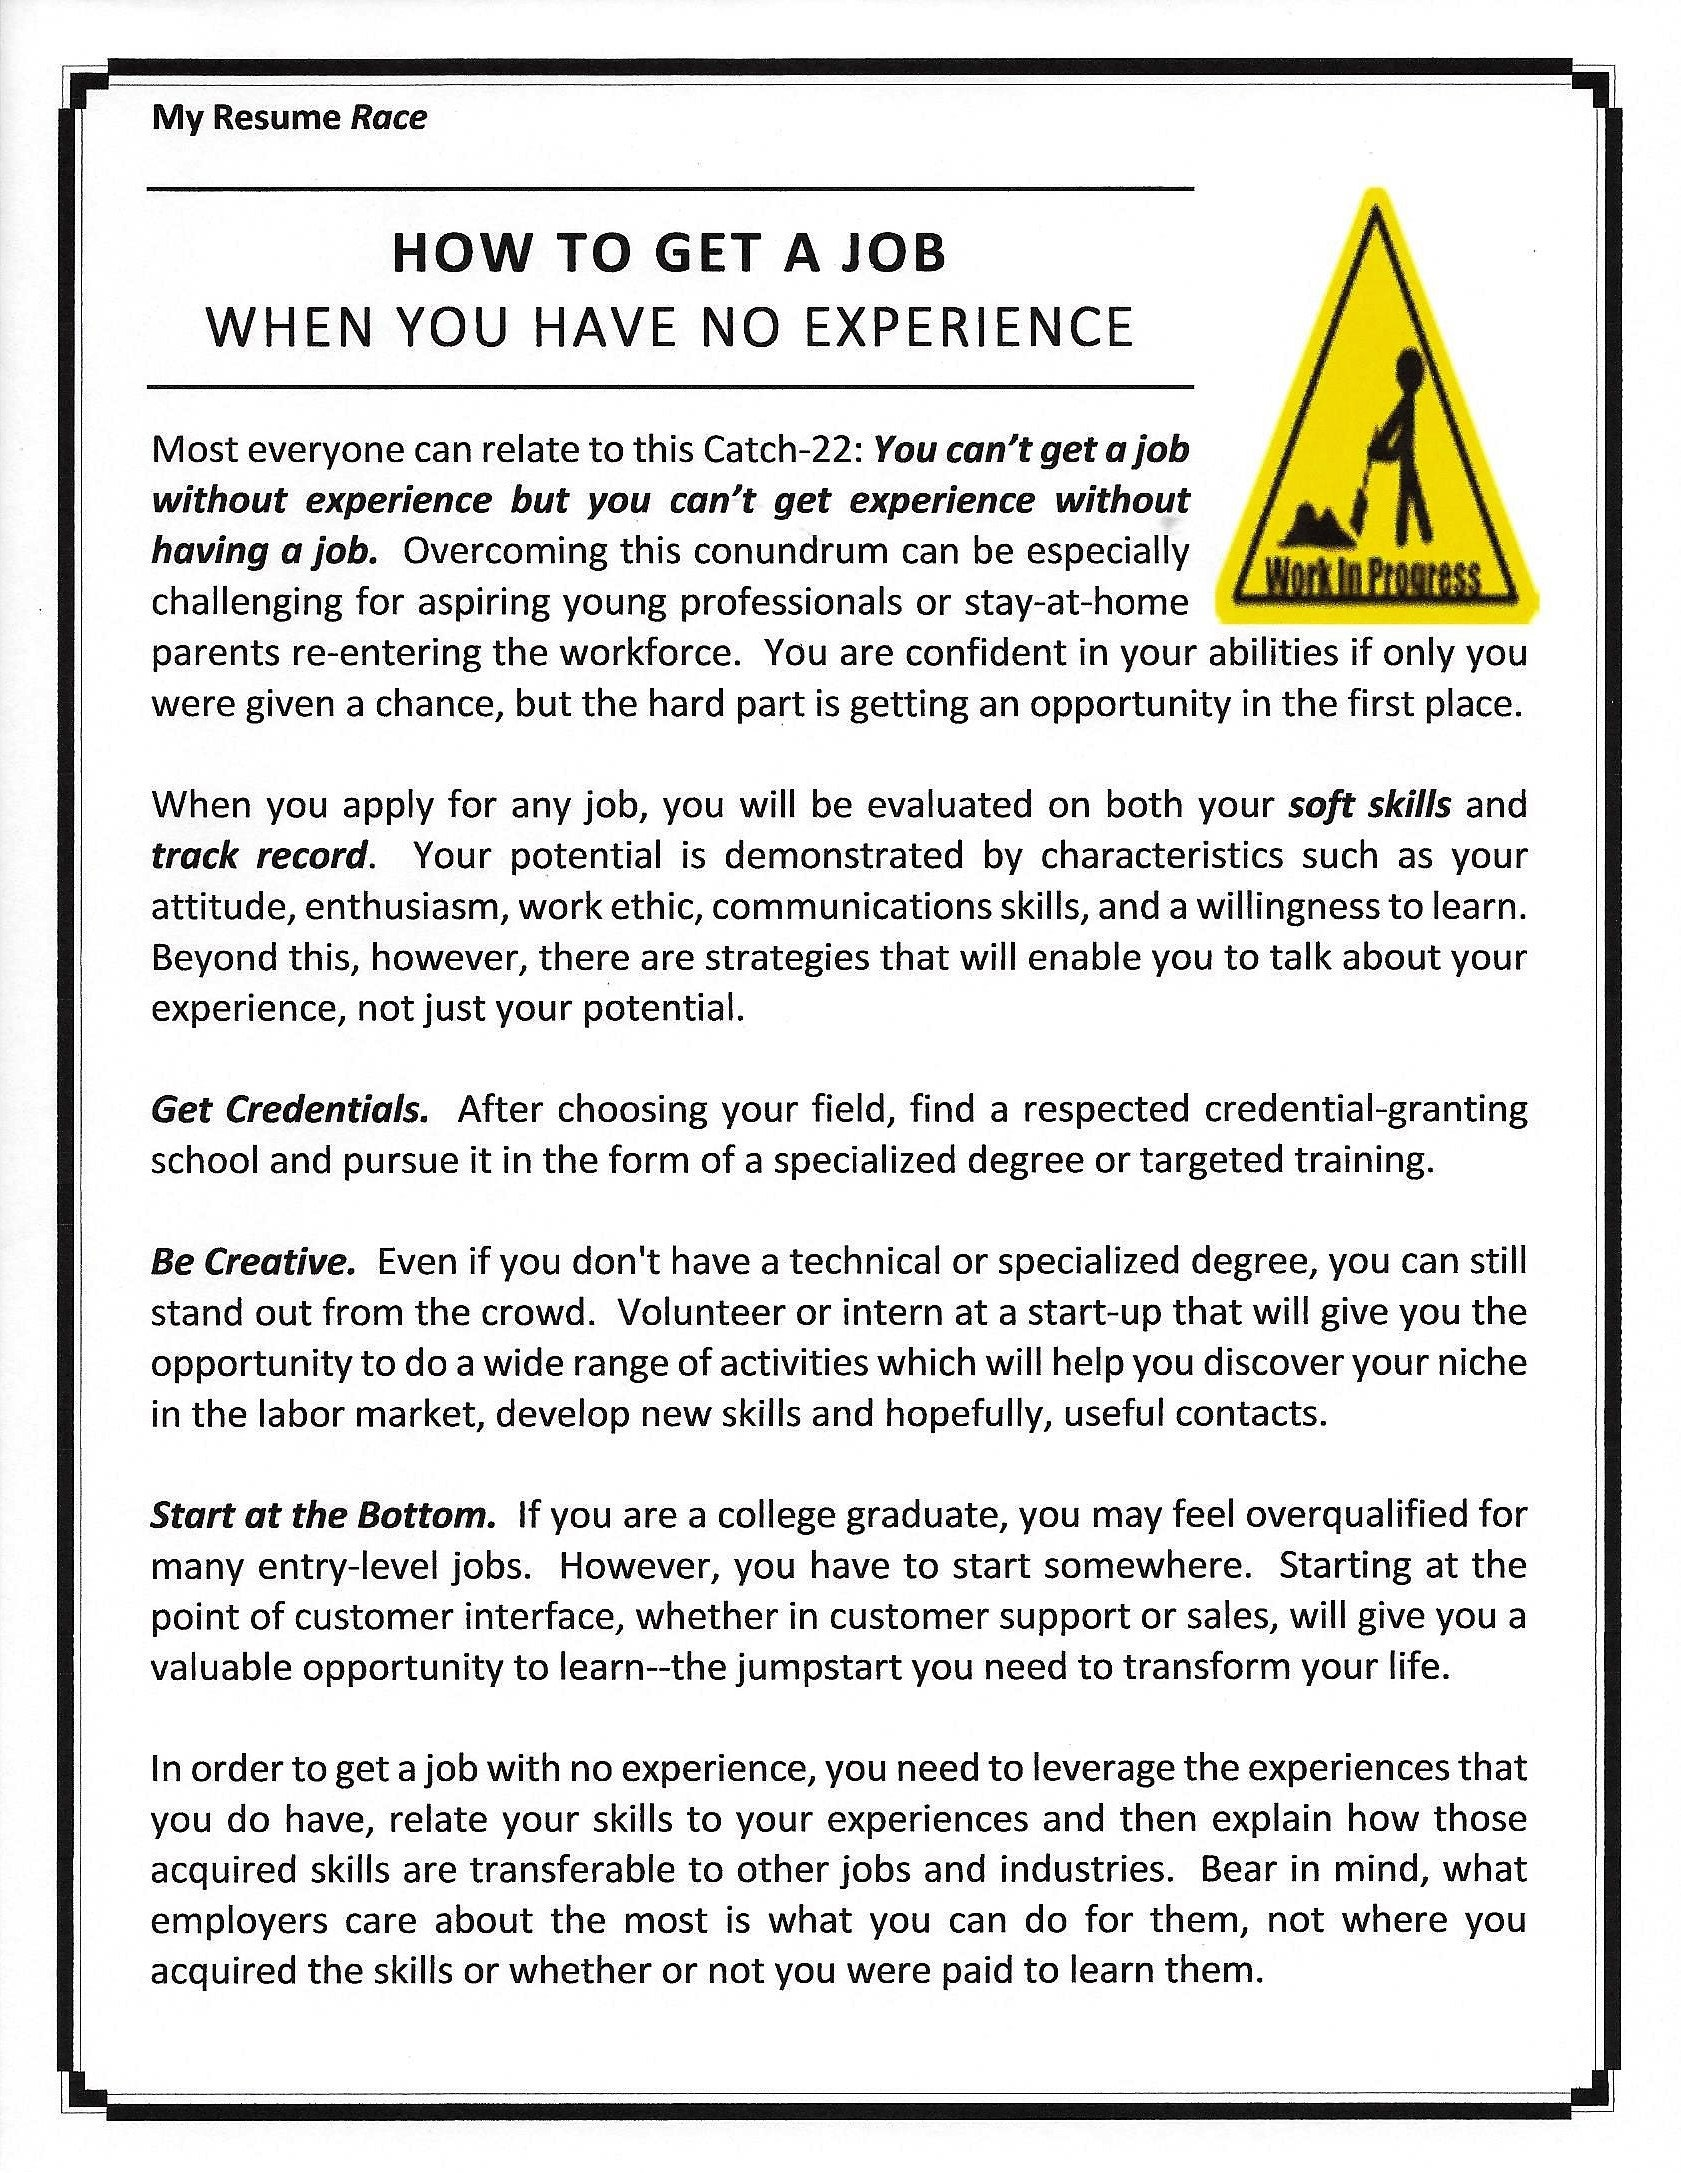 How To Make Your Resume Stand Out With No Experience Images - free ...